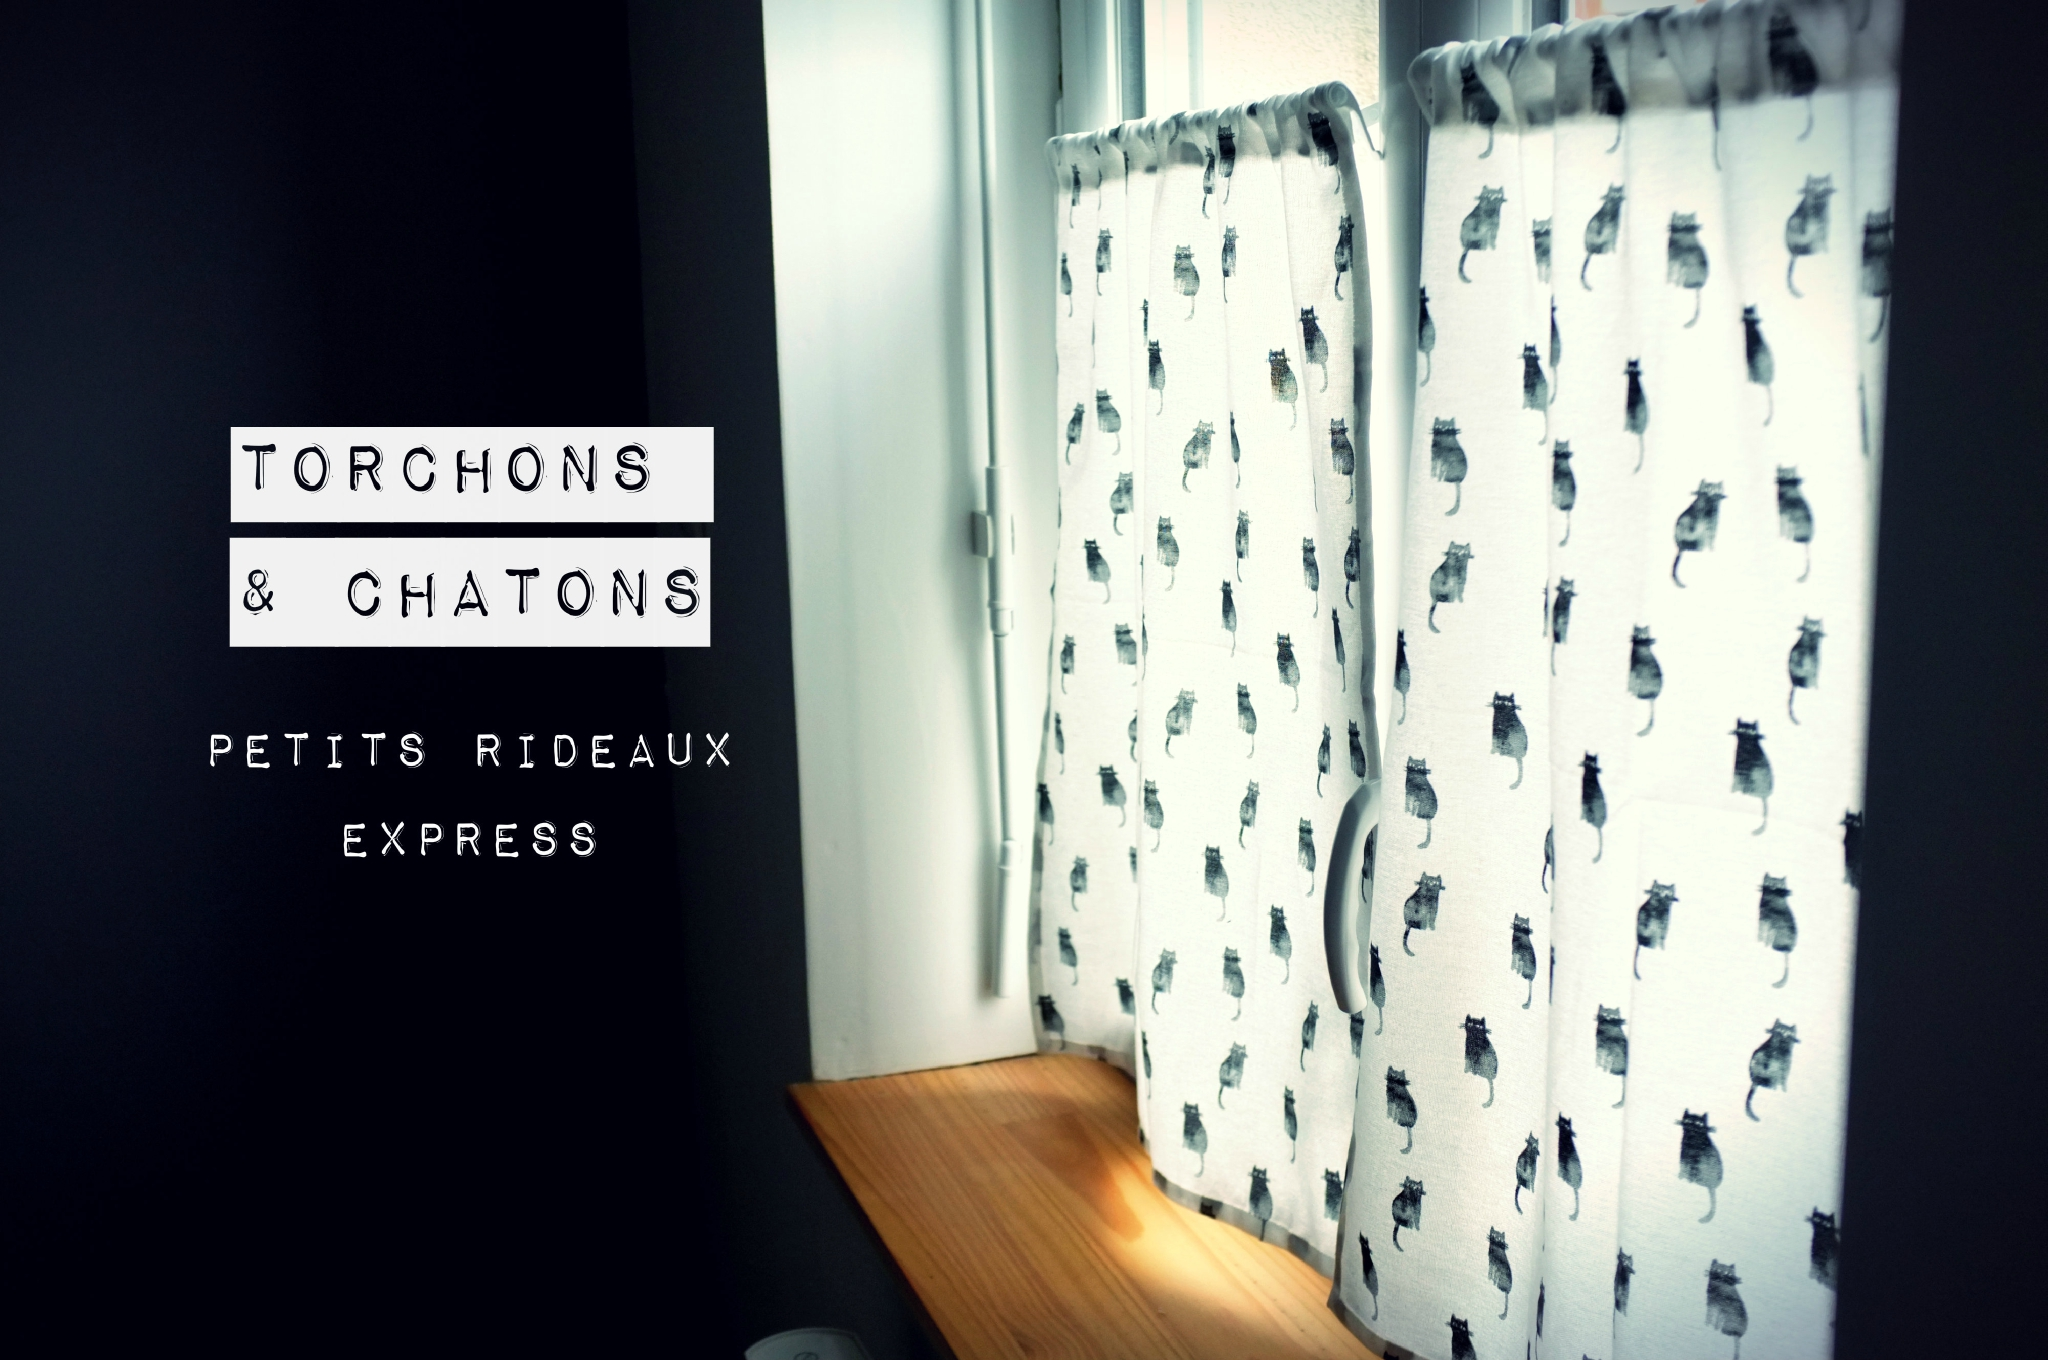 Torchons & chatons : petits rideaux express !